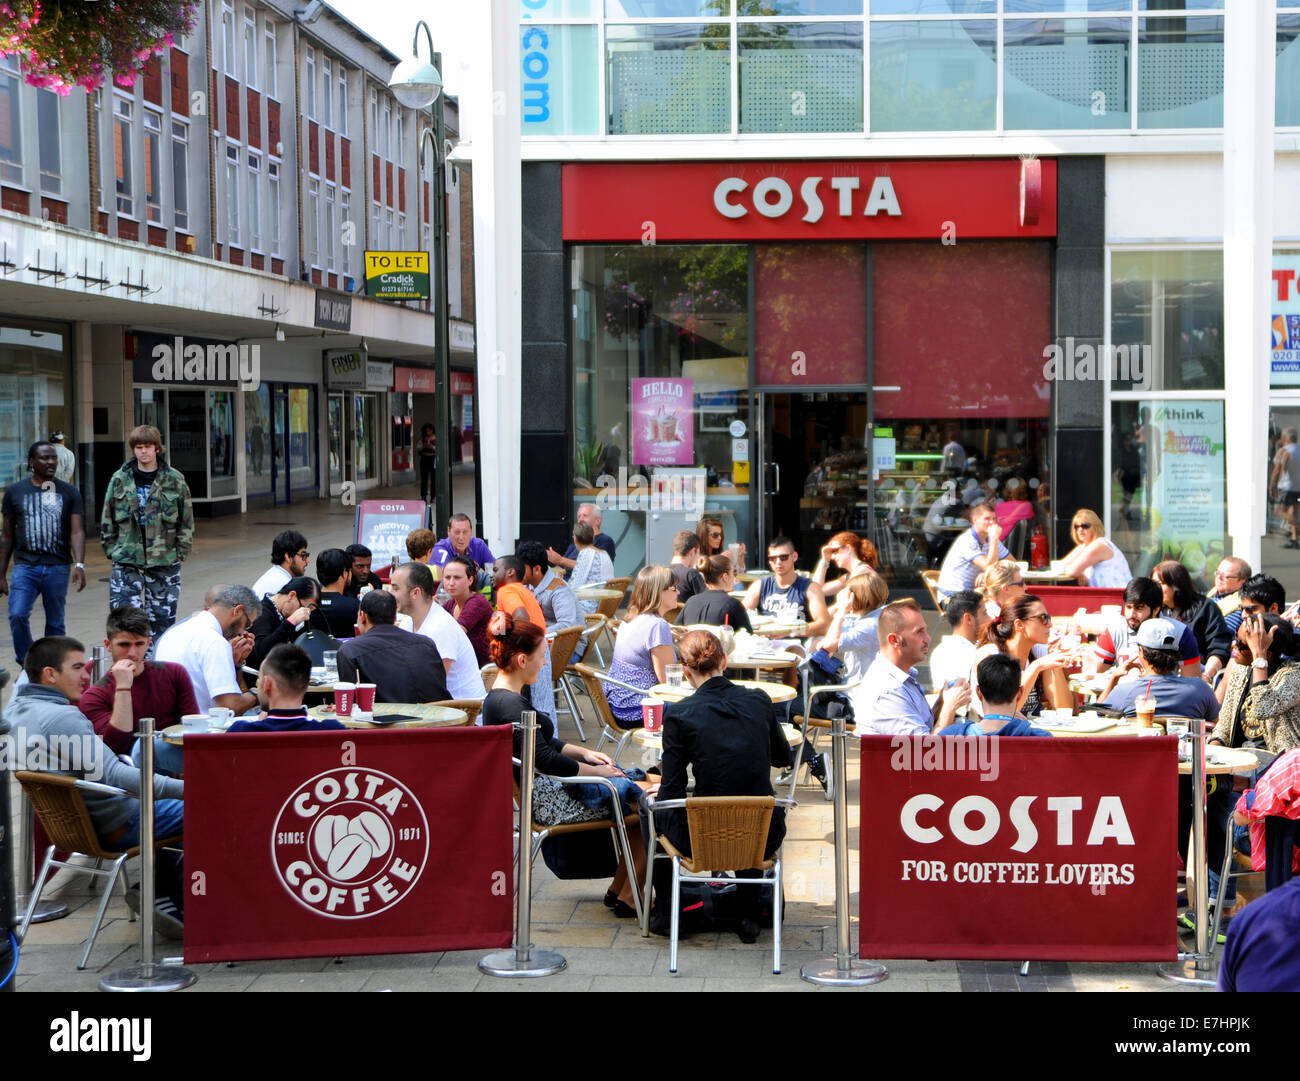 Crawley West Sussex UK - Costa Coffee cafe with people sitting outside in hot weather Stock Photo